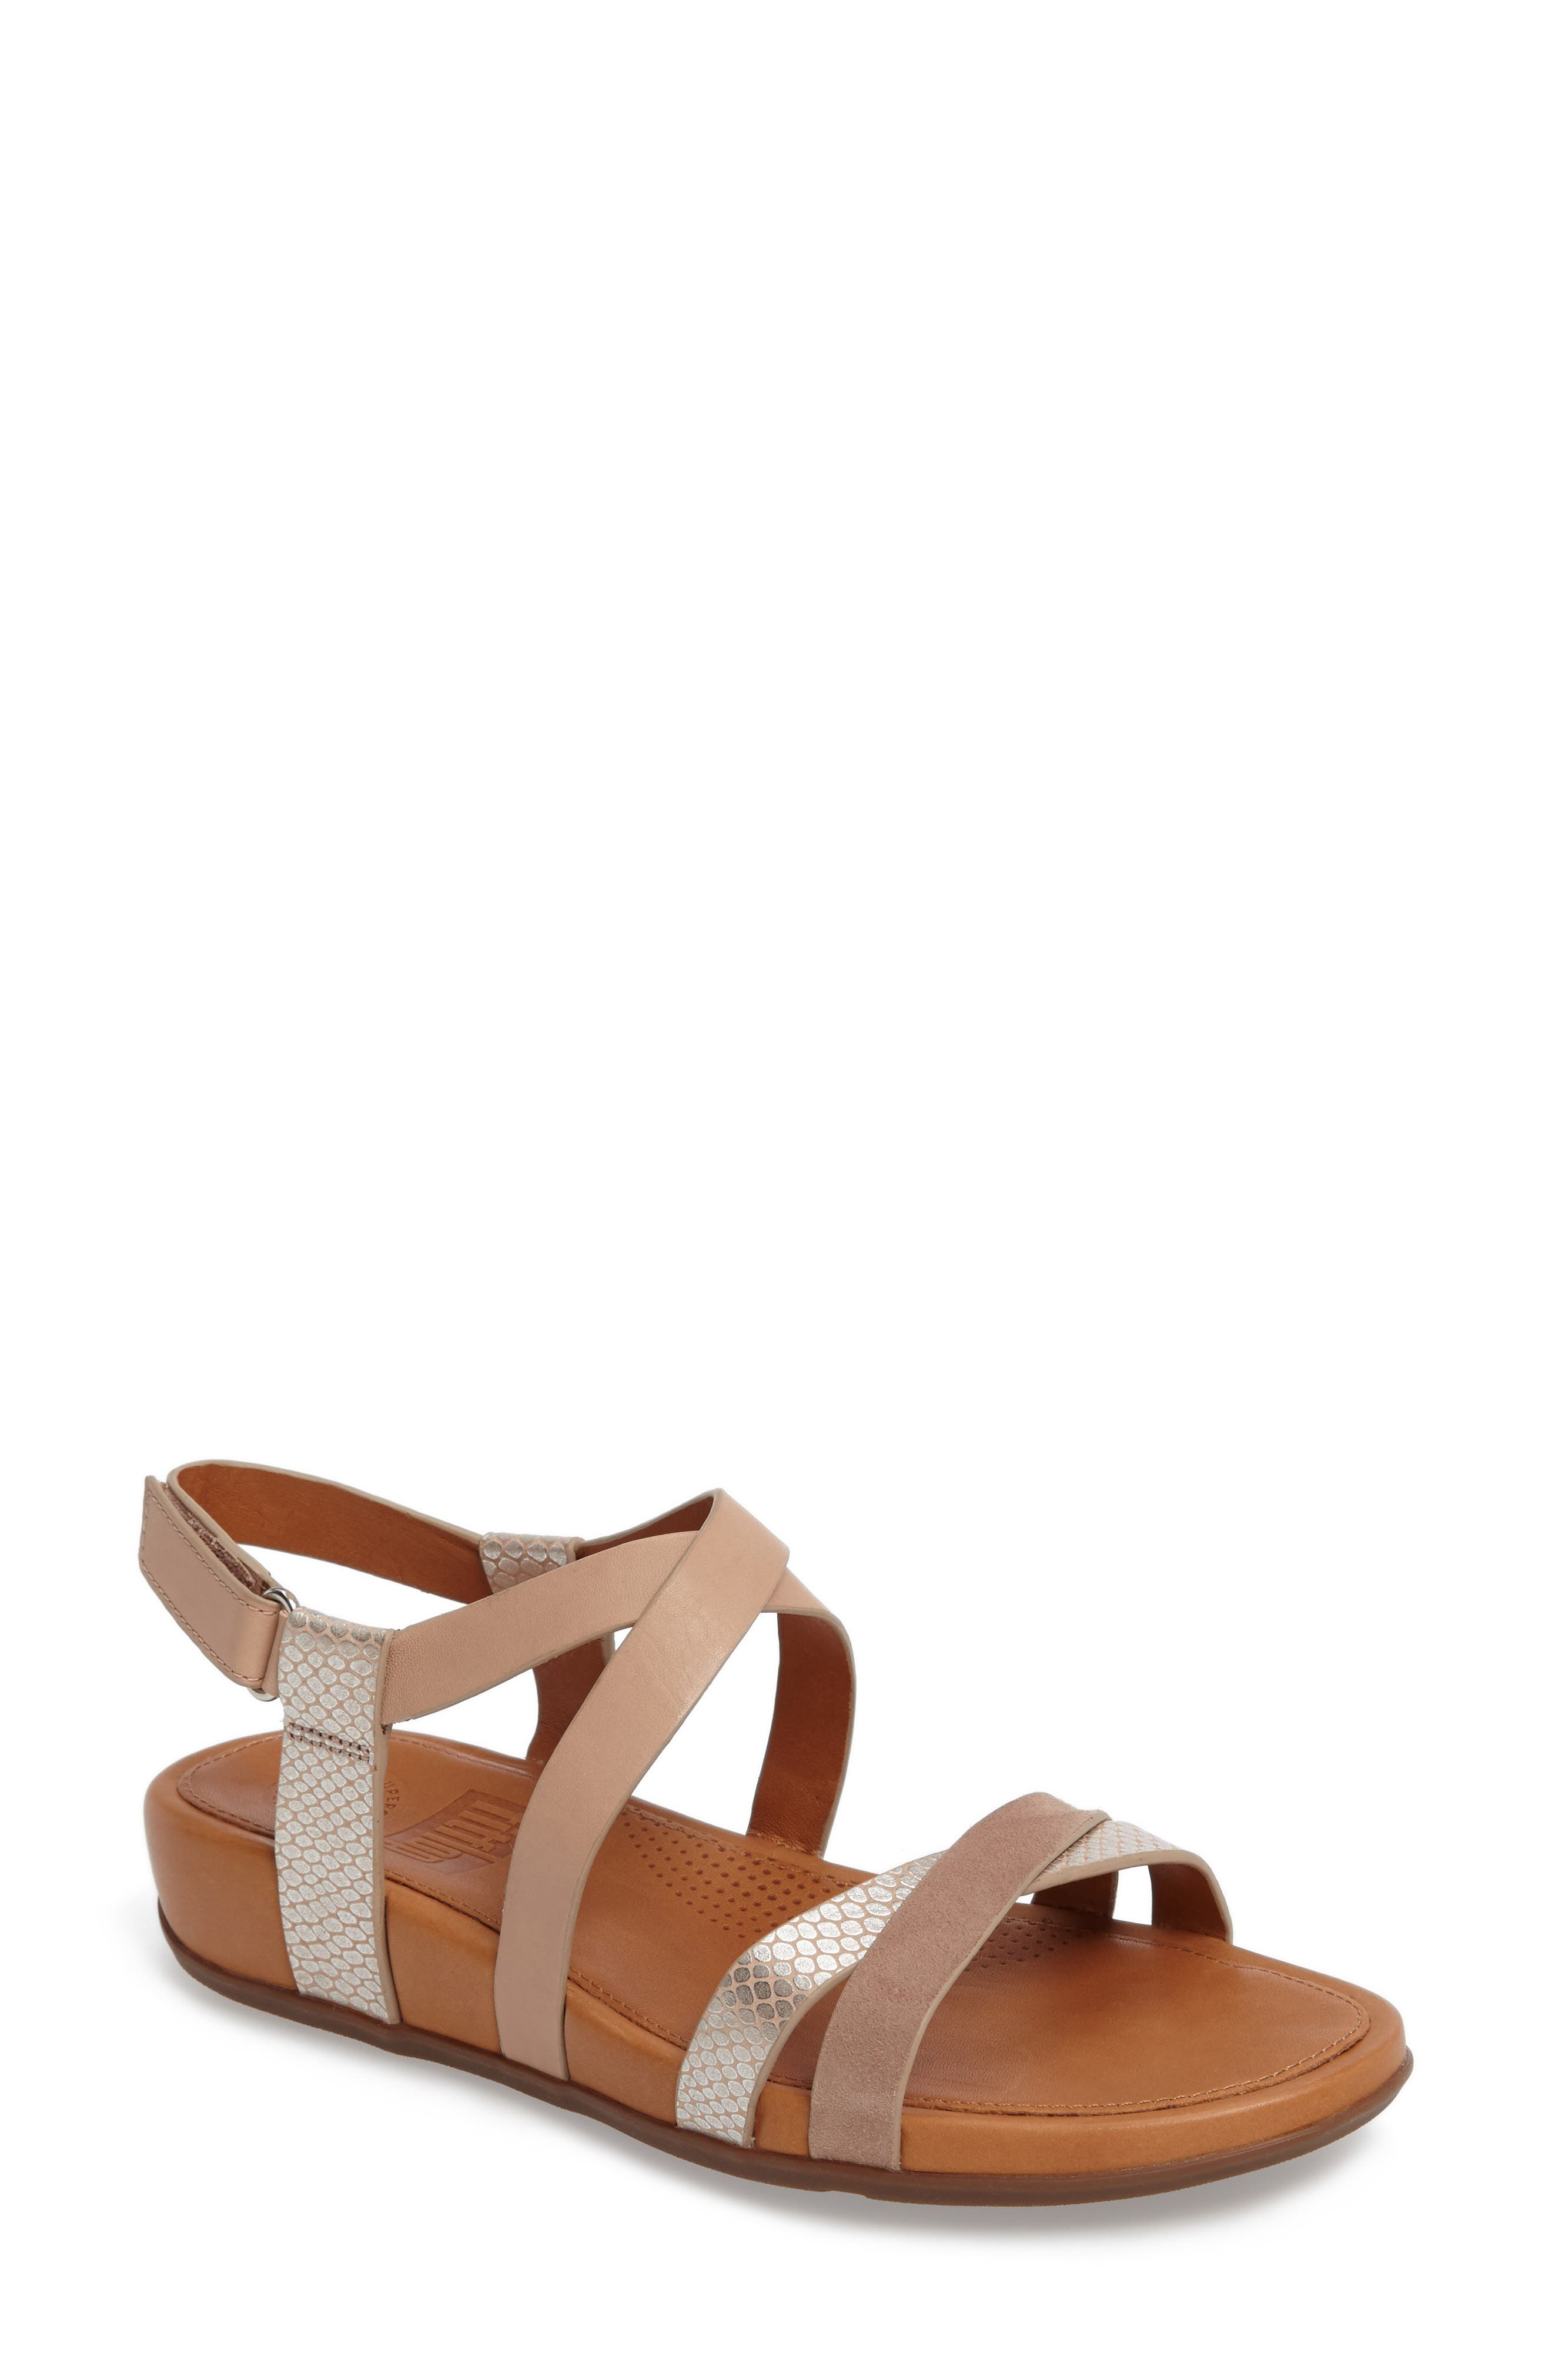 Lumy Crisscross Sandal,                         Main,                         color, Peachy/ Silver Snake Suede